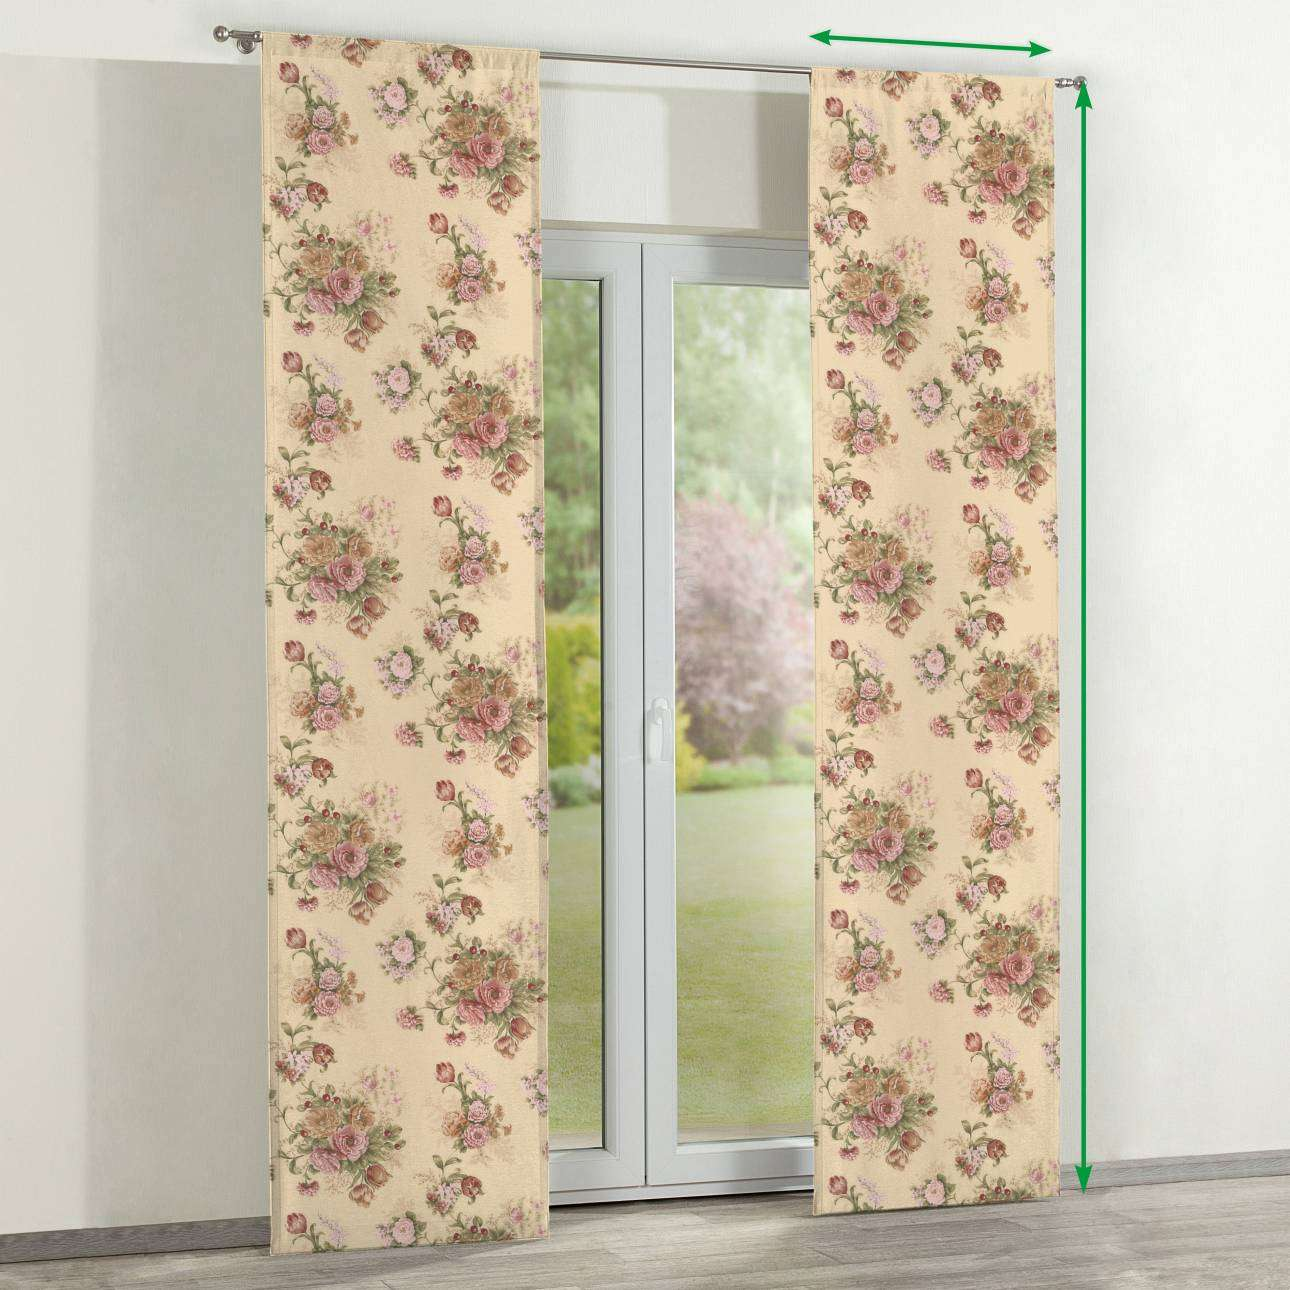 Slot panel curtains – Set of 2 in collection Flowers, fabric: 302-01